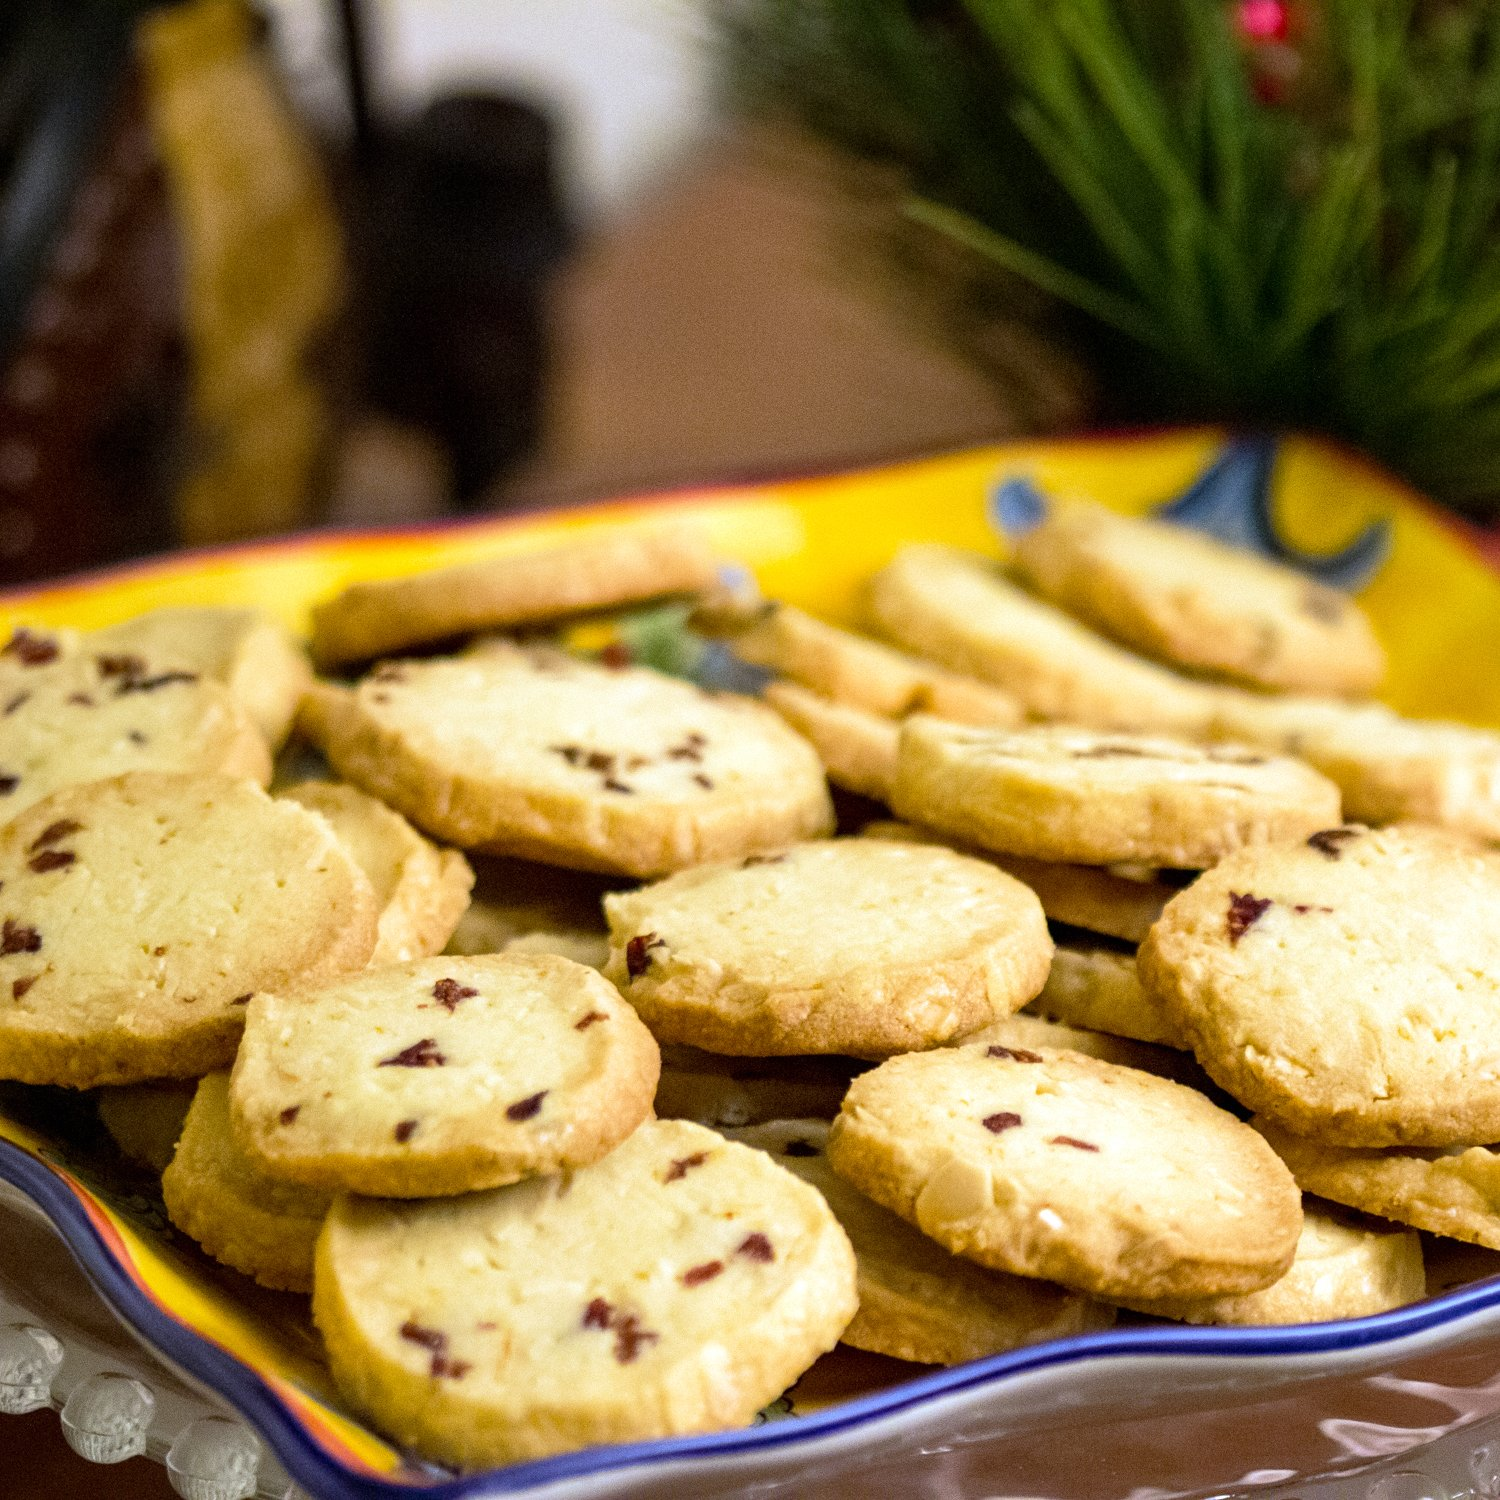 These almond-cranberry shortbread cookies remind us of the holidays. Perfect recipe for potlucks, cookies swap parties and any holiday event.